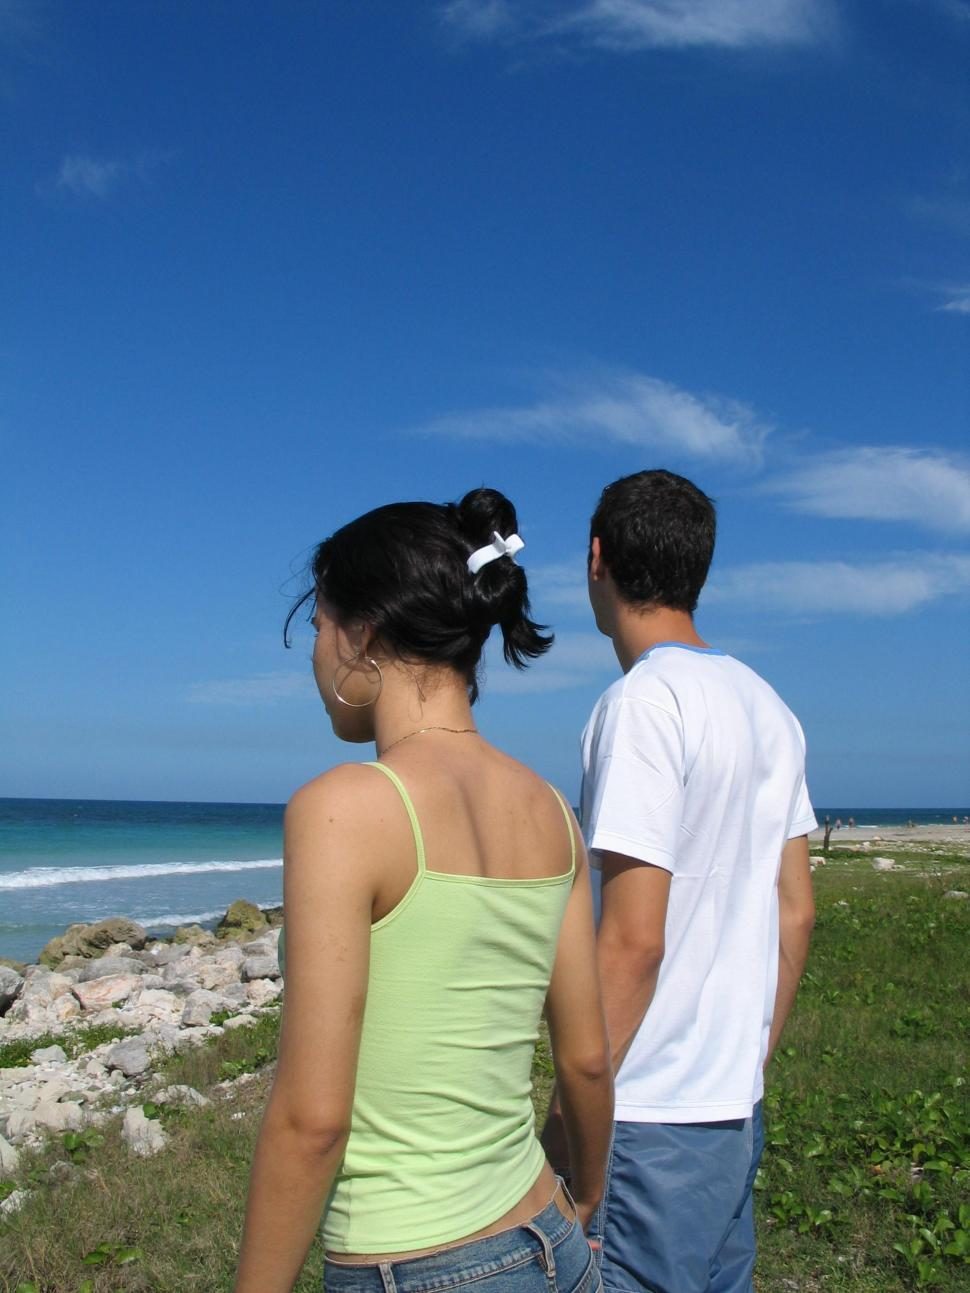 Download Free Stock Photo of Young Couple at Beach